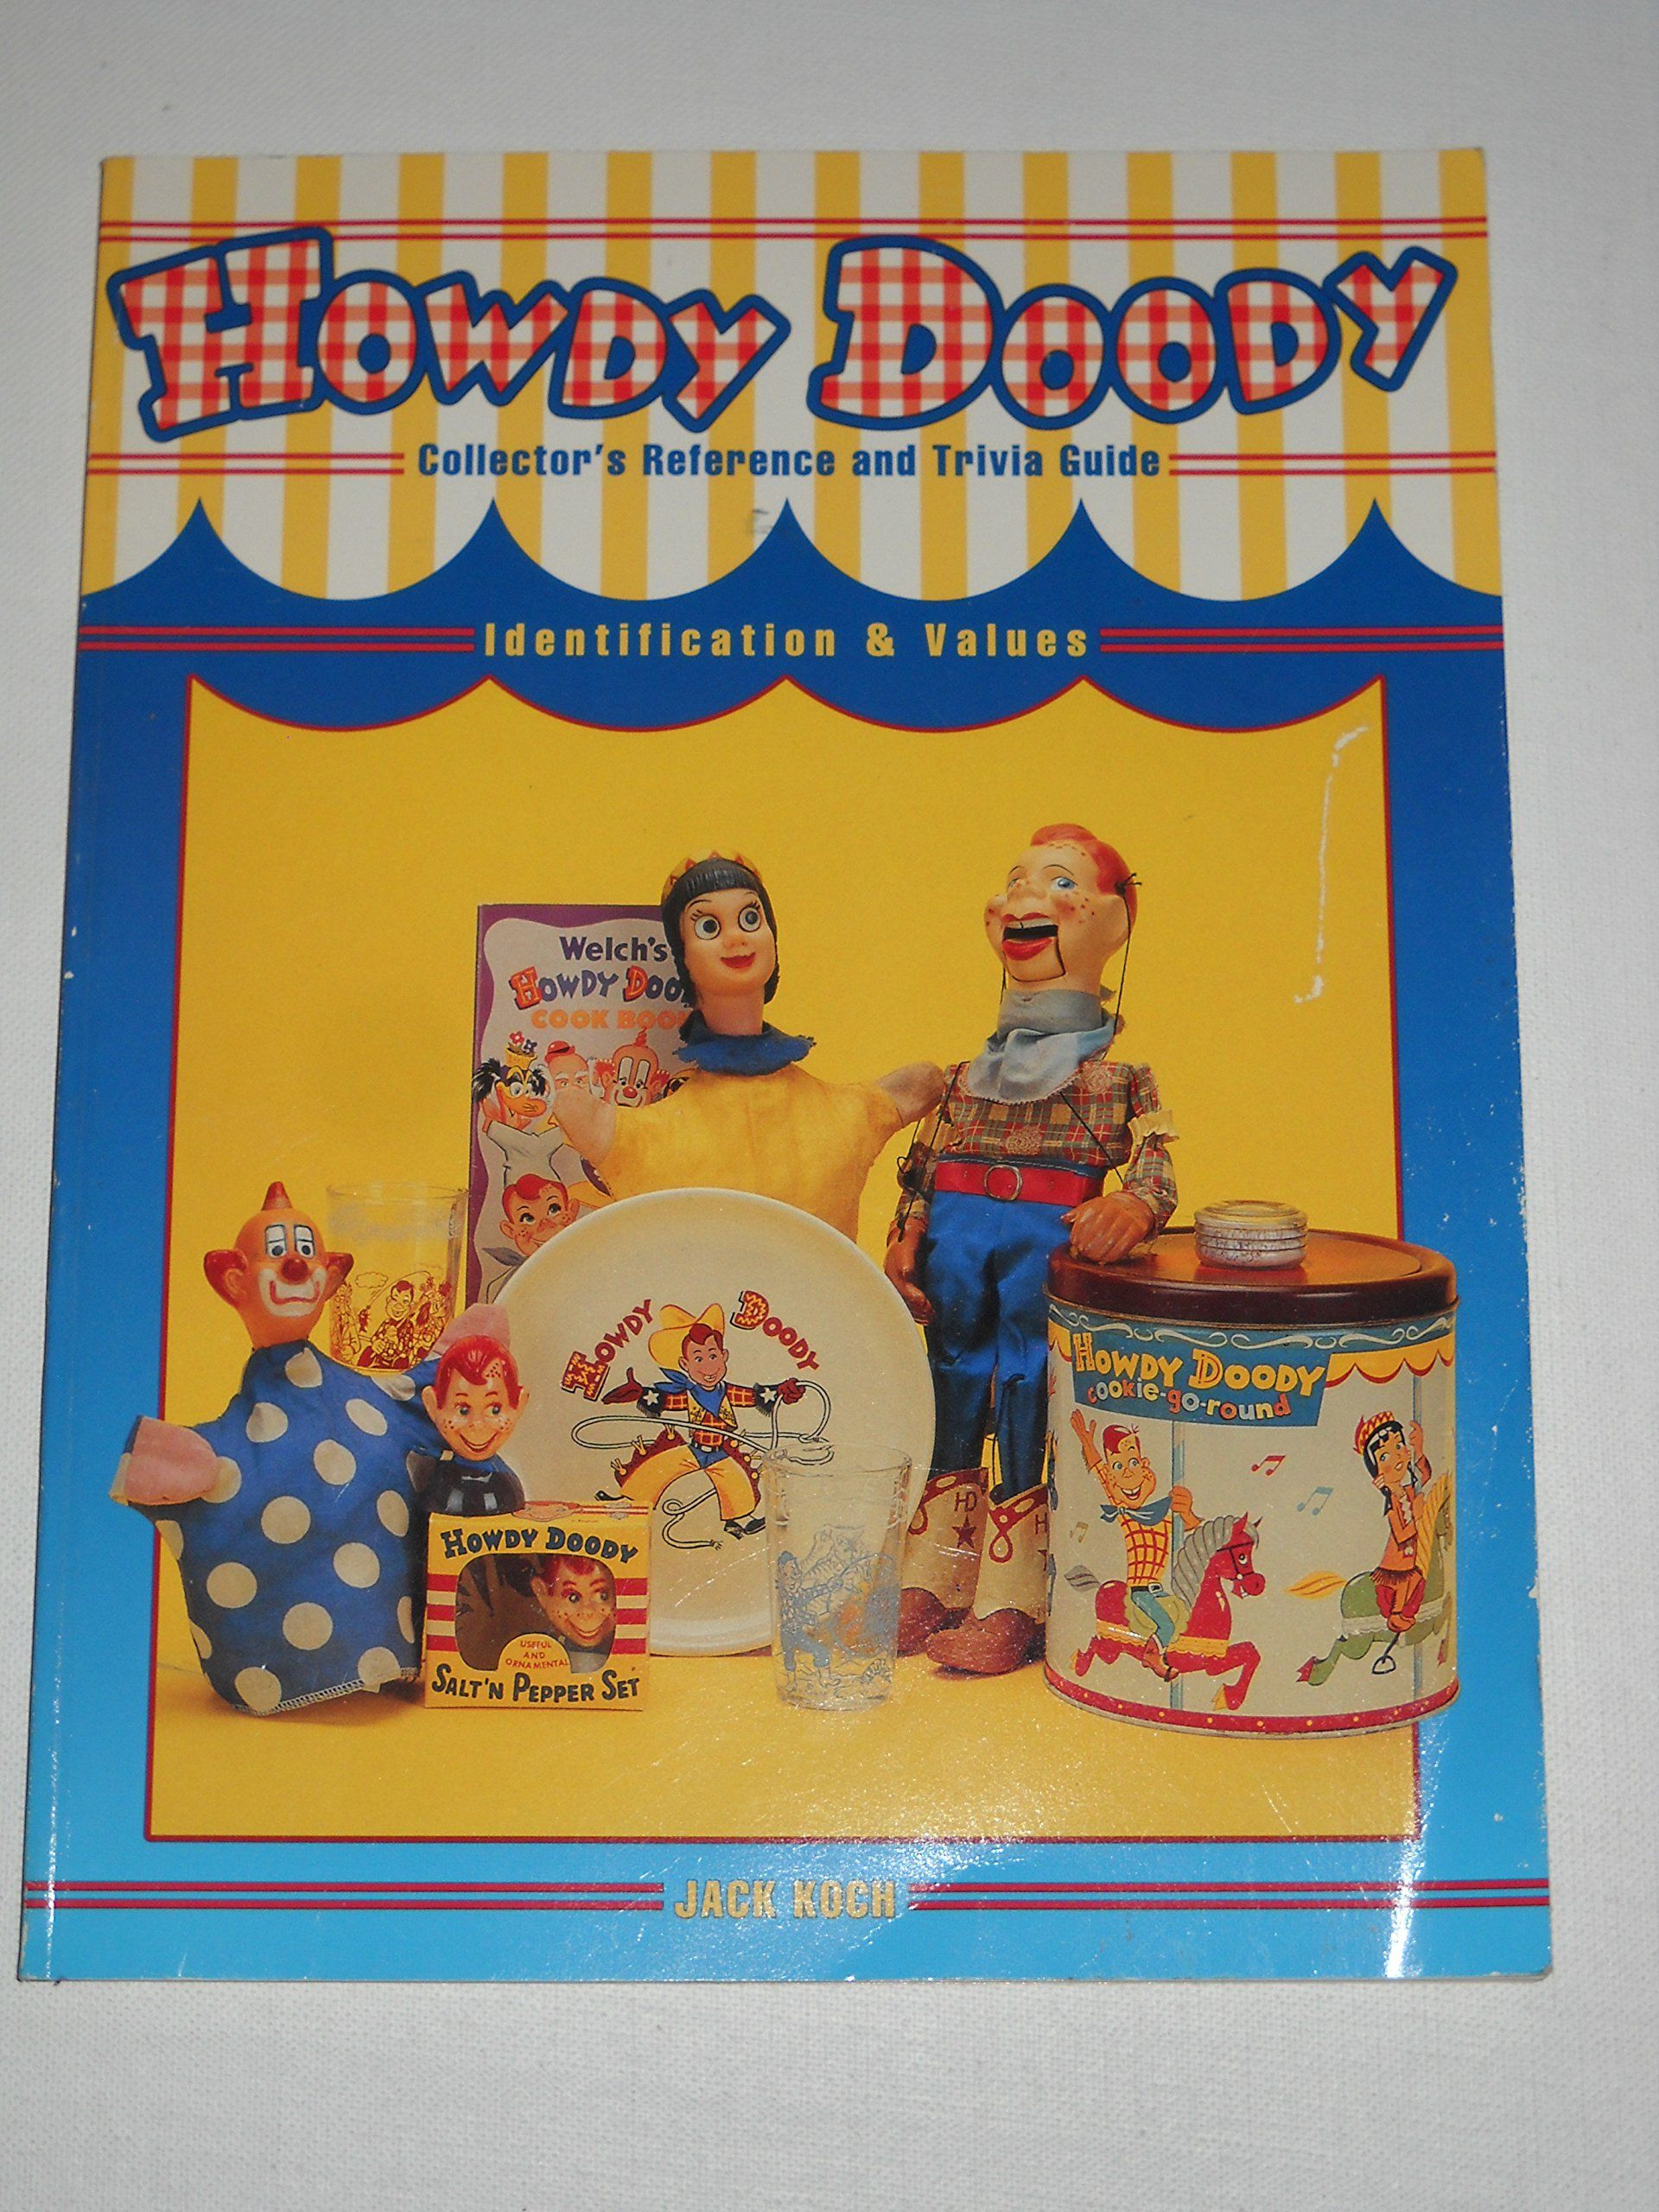 Howdy Doody: Collector's Reference and Trivia Guide, Identification & Values: Jack Koch: 9780891456797: Amazon.com: Books